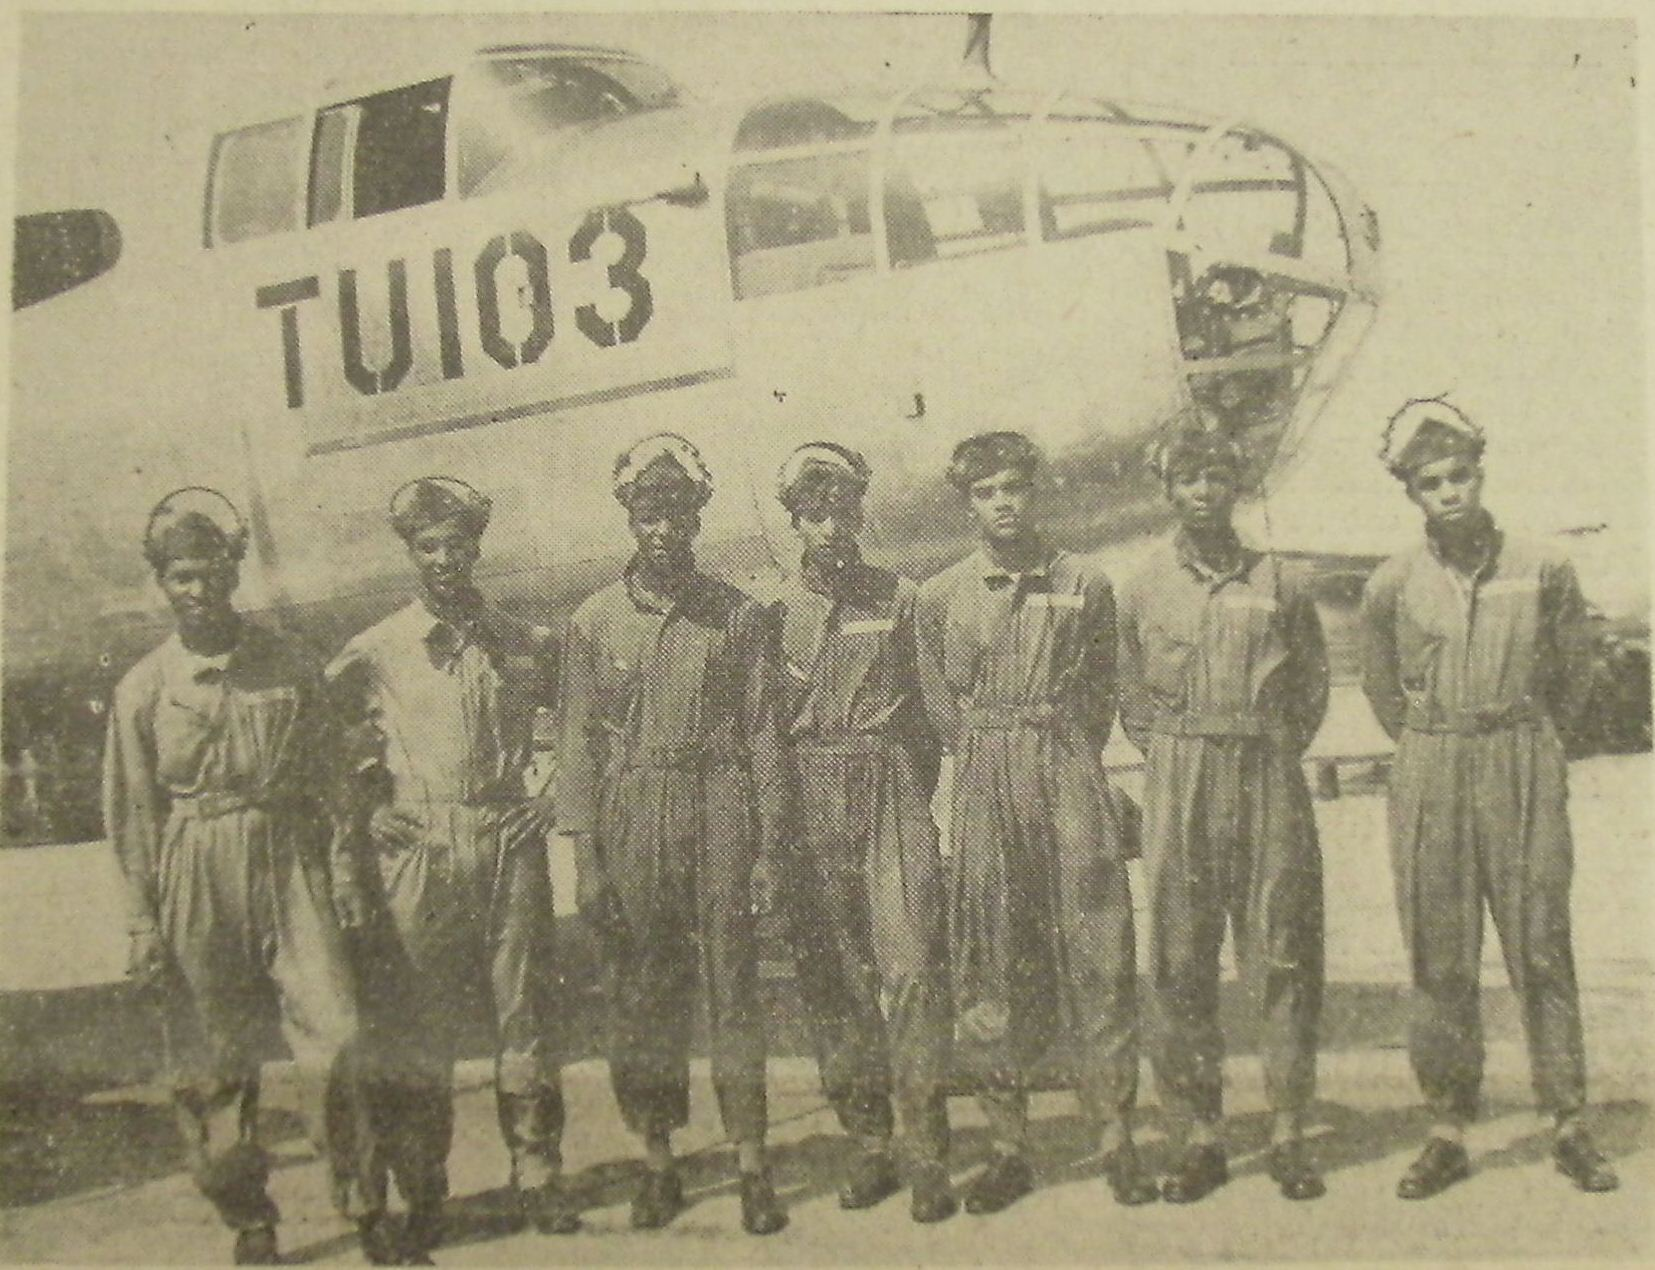 Along with a group of six others, New Orleanian native Russell F. Desvignes graduated from the Tuskegee Field on April 16th 1945.From left to right the Airmen are: F/O James H. Taylor, Champaign, Ill.; 2nd Lt. Lowell H. Jordan, New York, NY; F/O Leroy Criss, Los Angeles, Calif.; F/O George G. Norton, St. Louis, Mo.; 2nd Lt. Theopolis W. Johnson, Birmingham, Ala.; F/O Russell F. Desvignes, New Orleans, La.; F/O Eldridge Freeman, Chicago, Ill. (Official U.S. AAF Photo by AAF Training Command.)